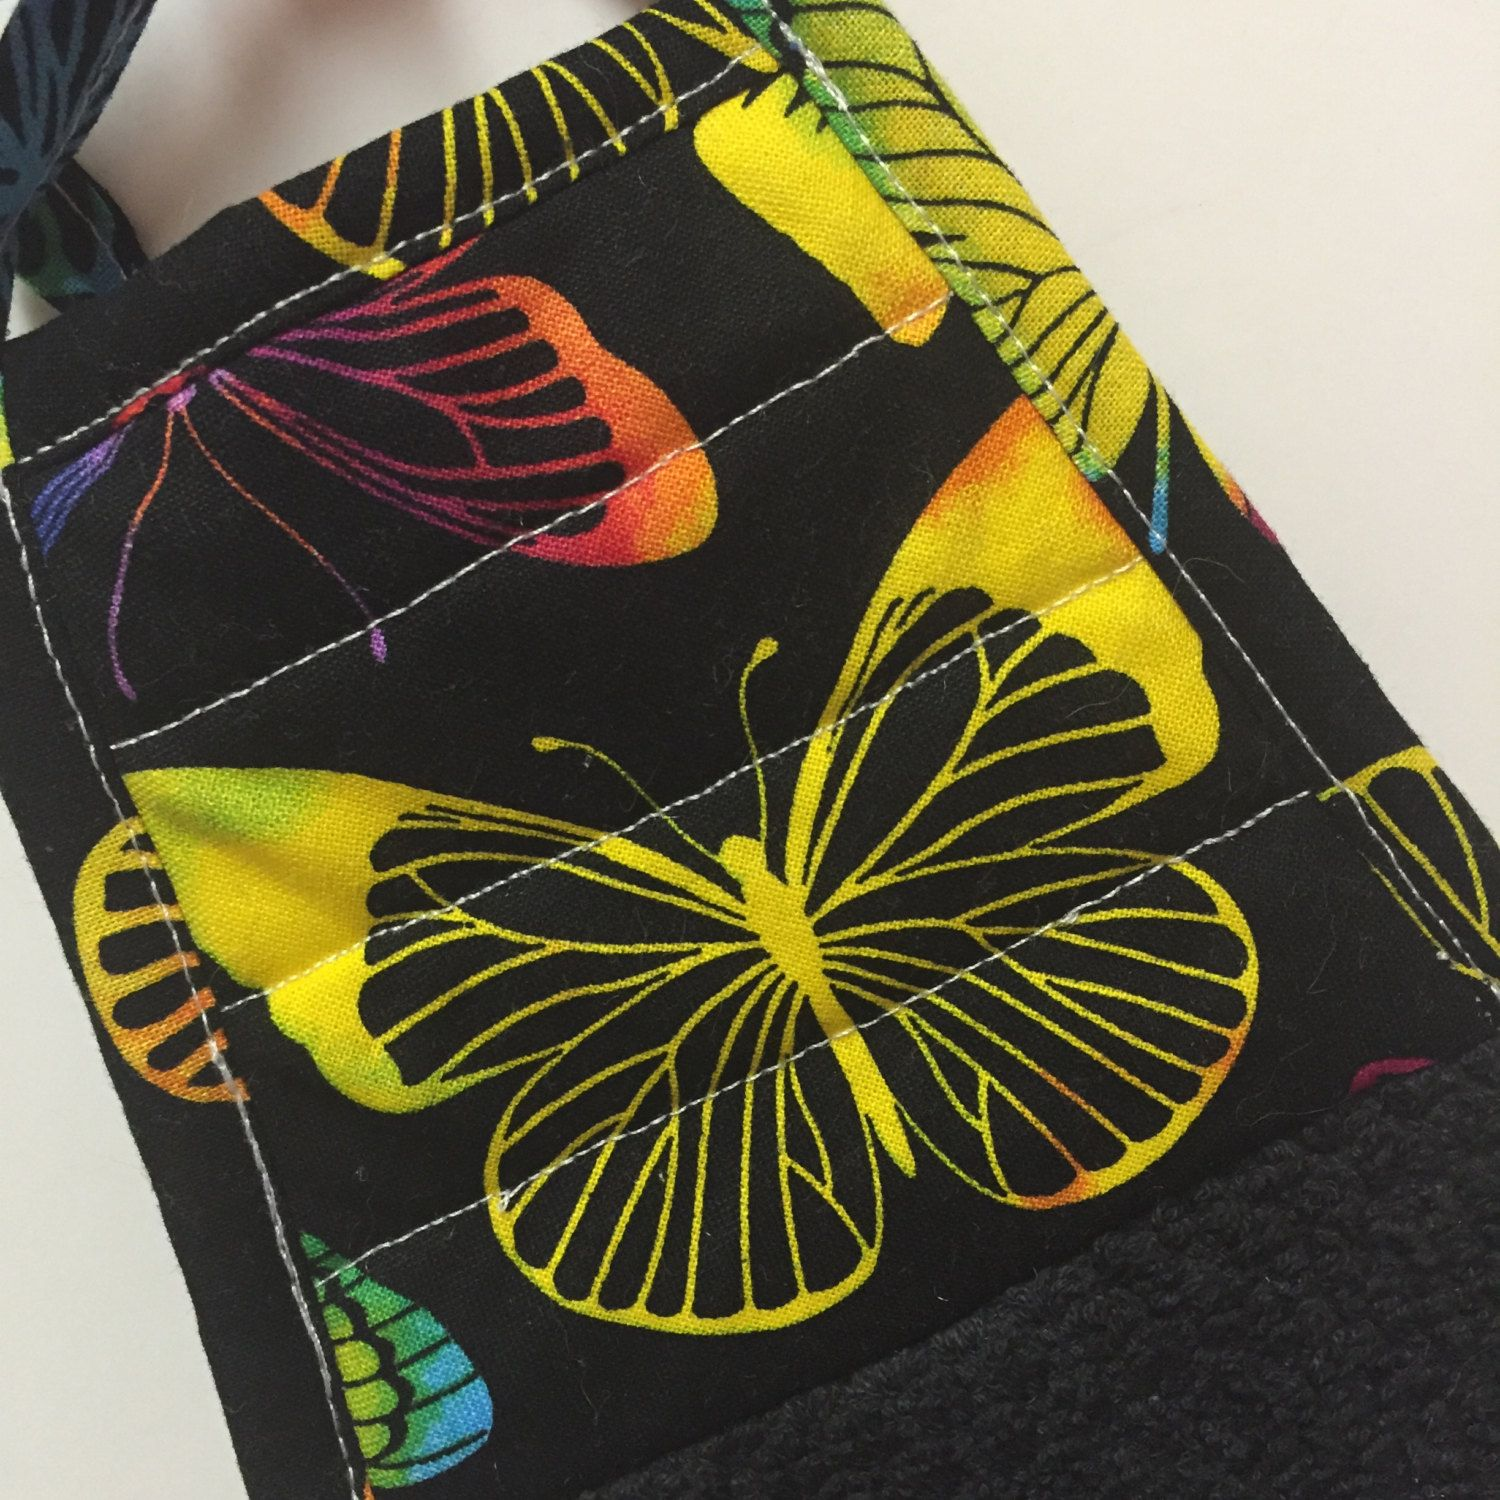 Butterfly Kitchen Towel,Butterfly Decor,Yellow Butterfly Towel,Black Towel, Kitchen Decor